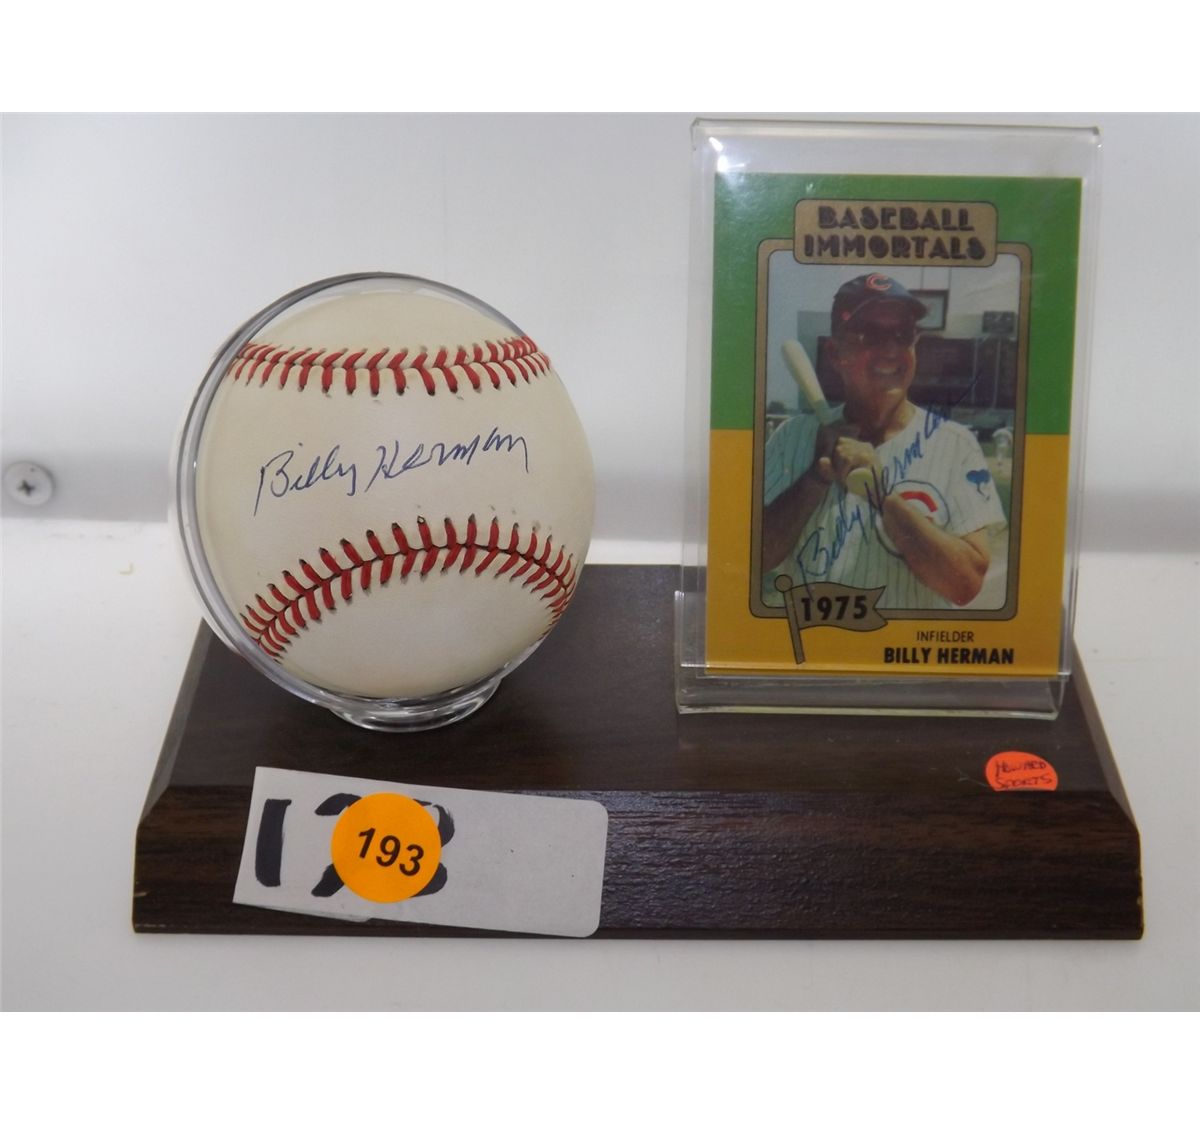 Billy Herman Autographed Baseball Card Rawlings Official Alb Stand Trading Card Appraised O